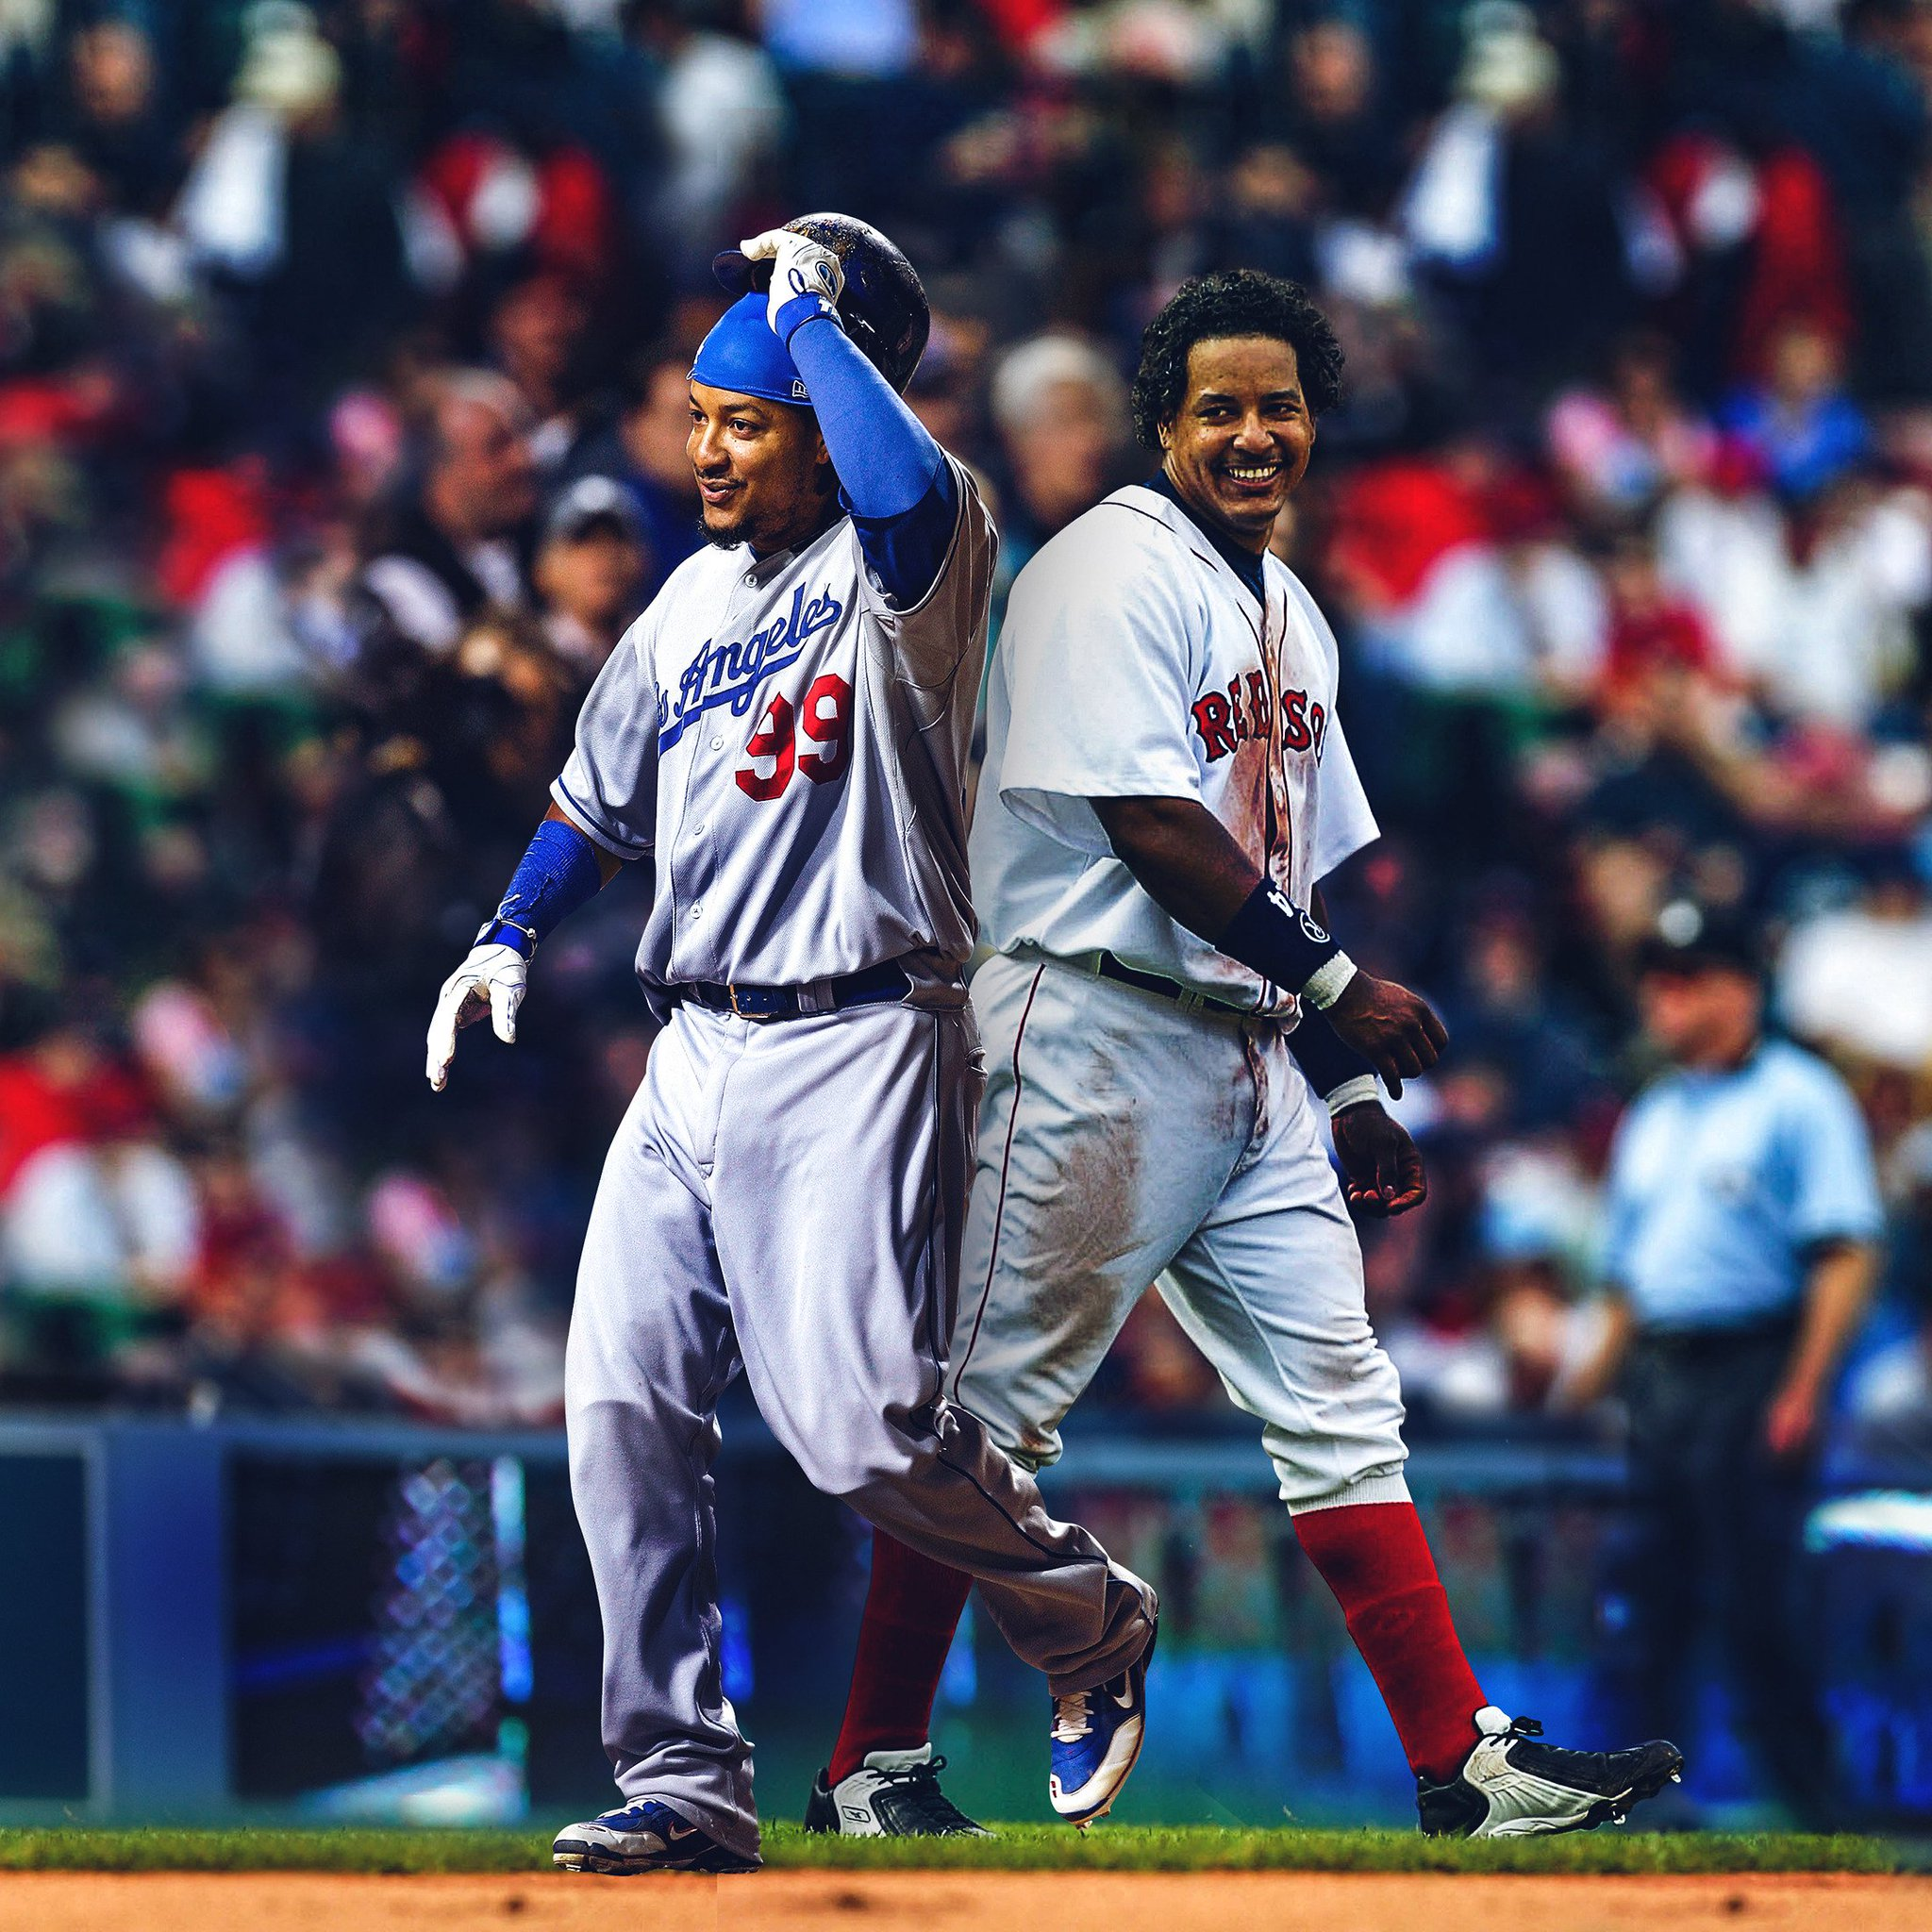 Oh Manny this is going to be great. #WorldSeries https://t.co/IpAreiTtgY